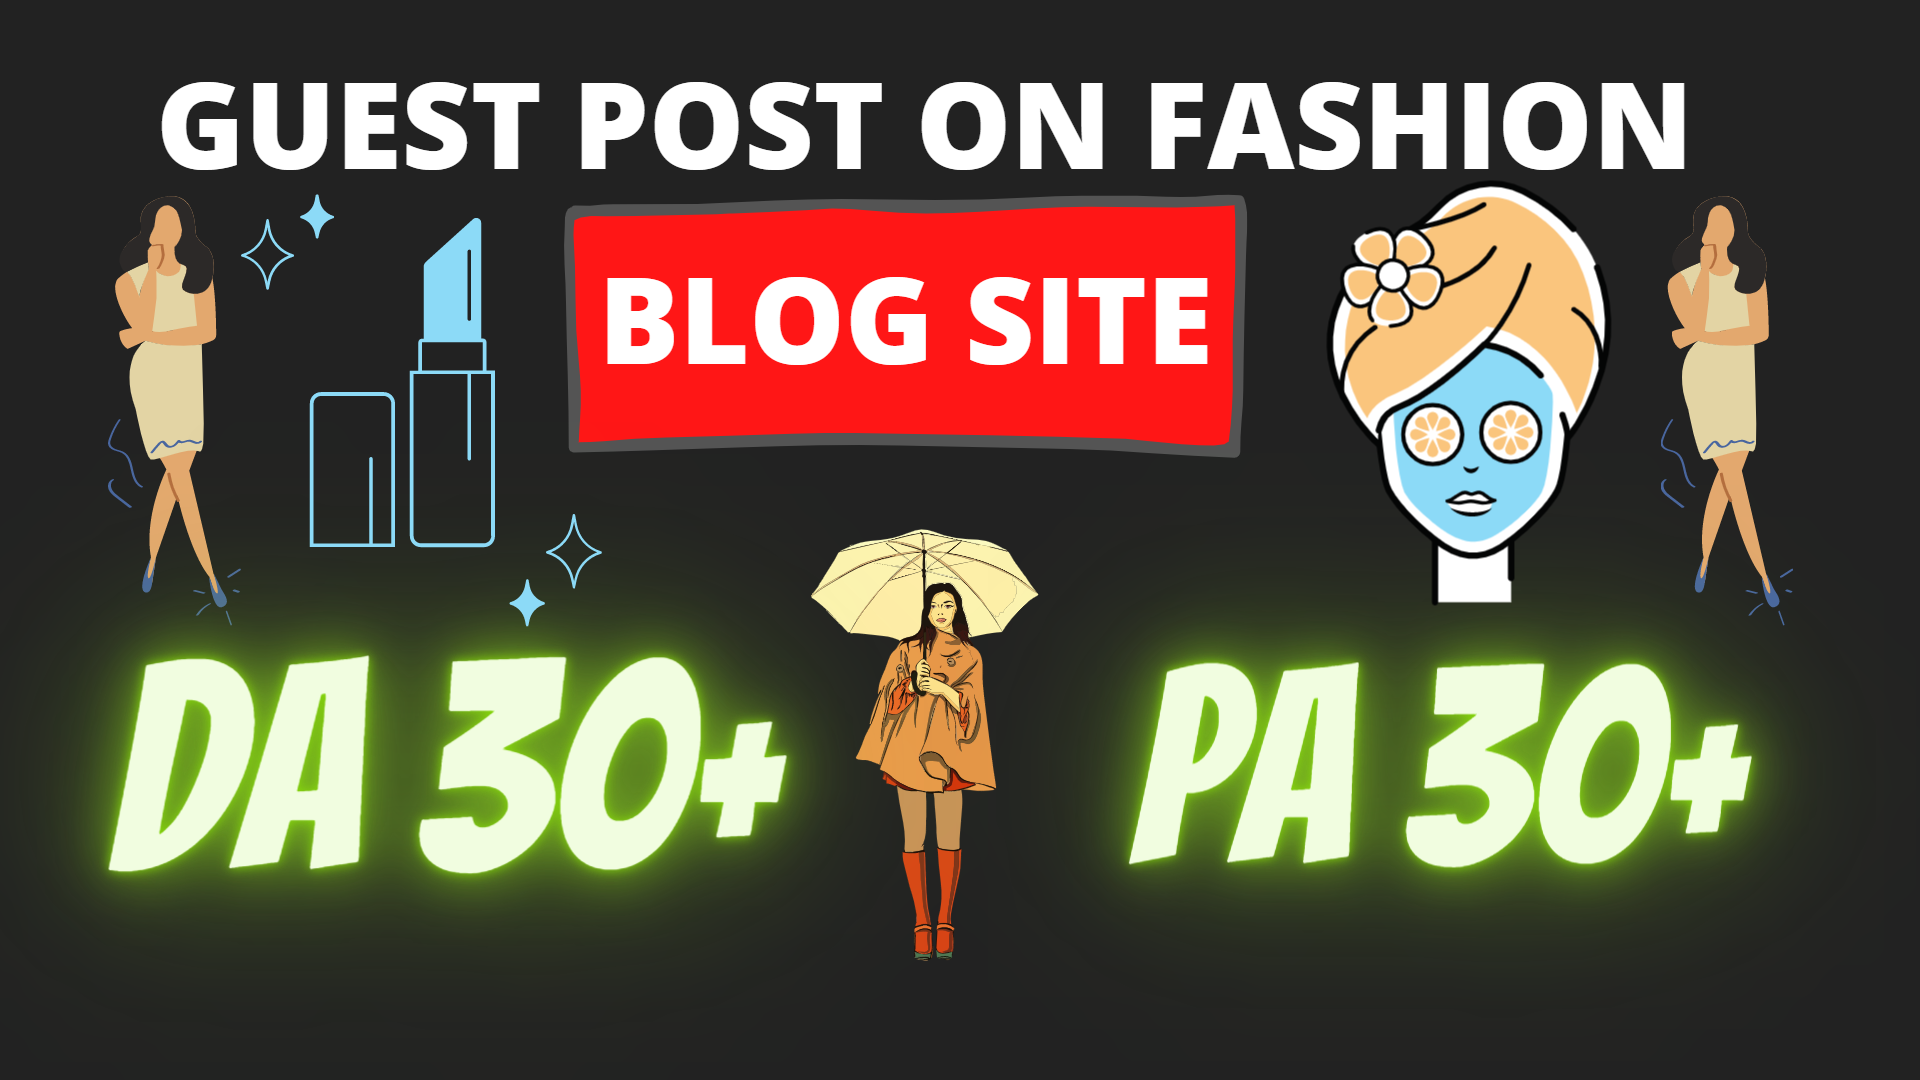 I will do a guest post on a fashion blog